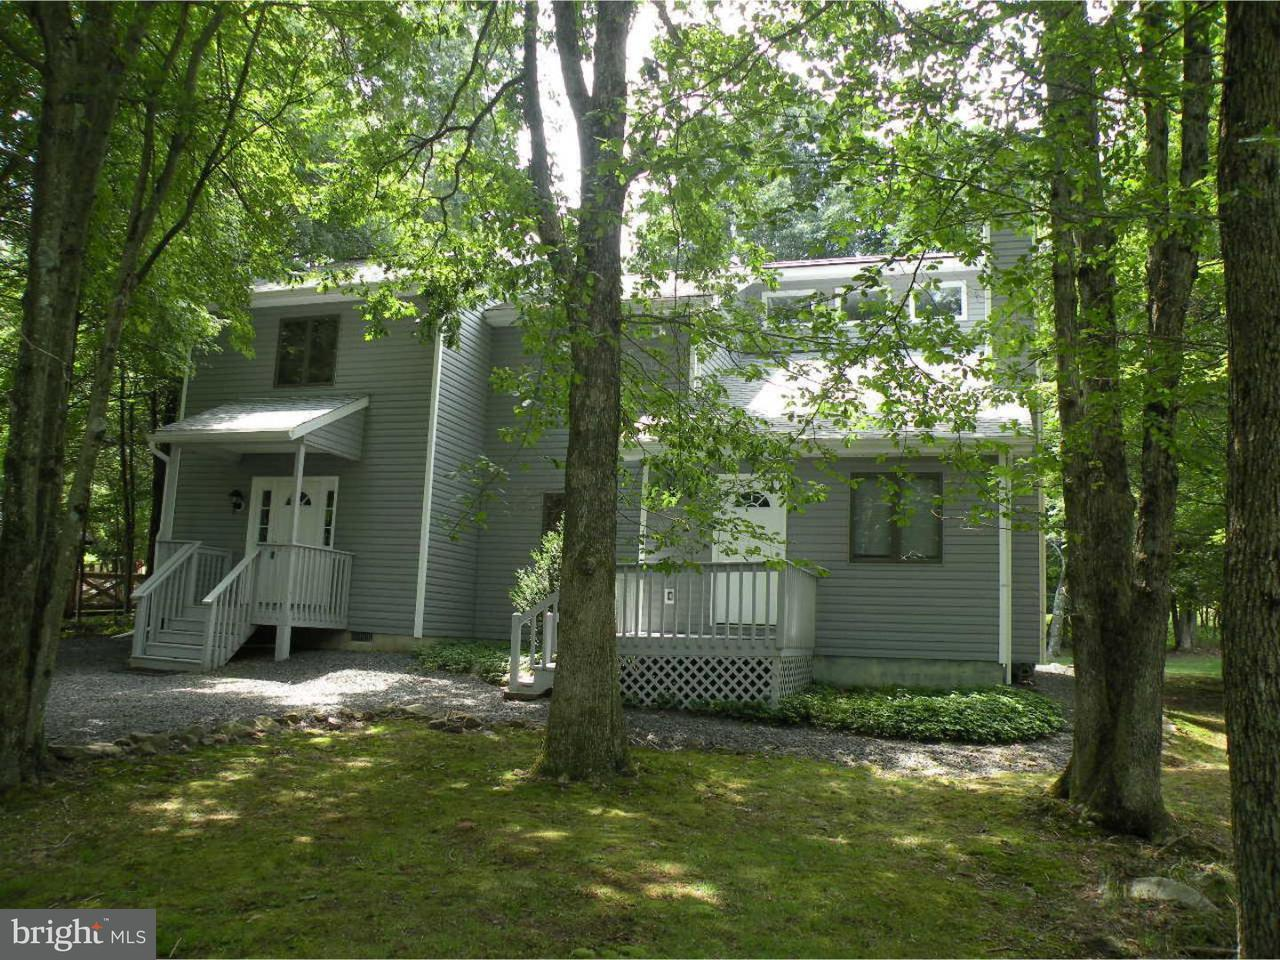 Single Family Home for Sale at 14 MASTERS Trail Albrightsville, Pennsylvania 18210 United States